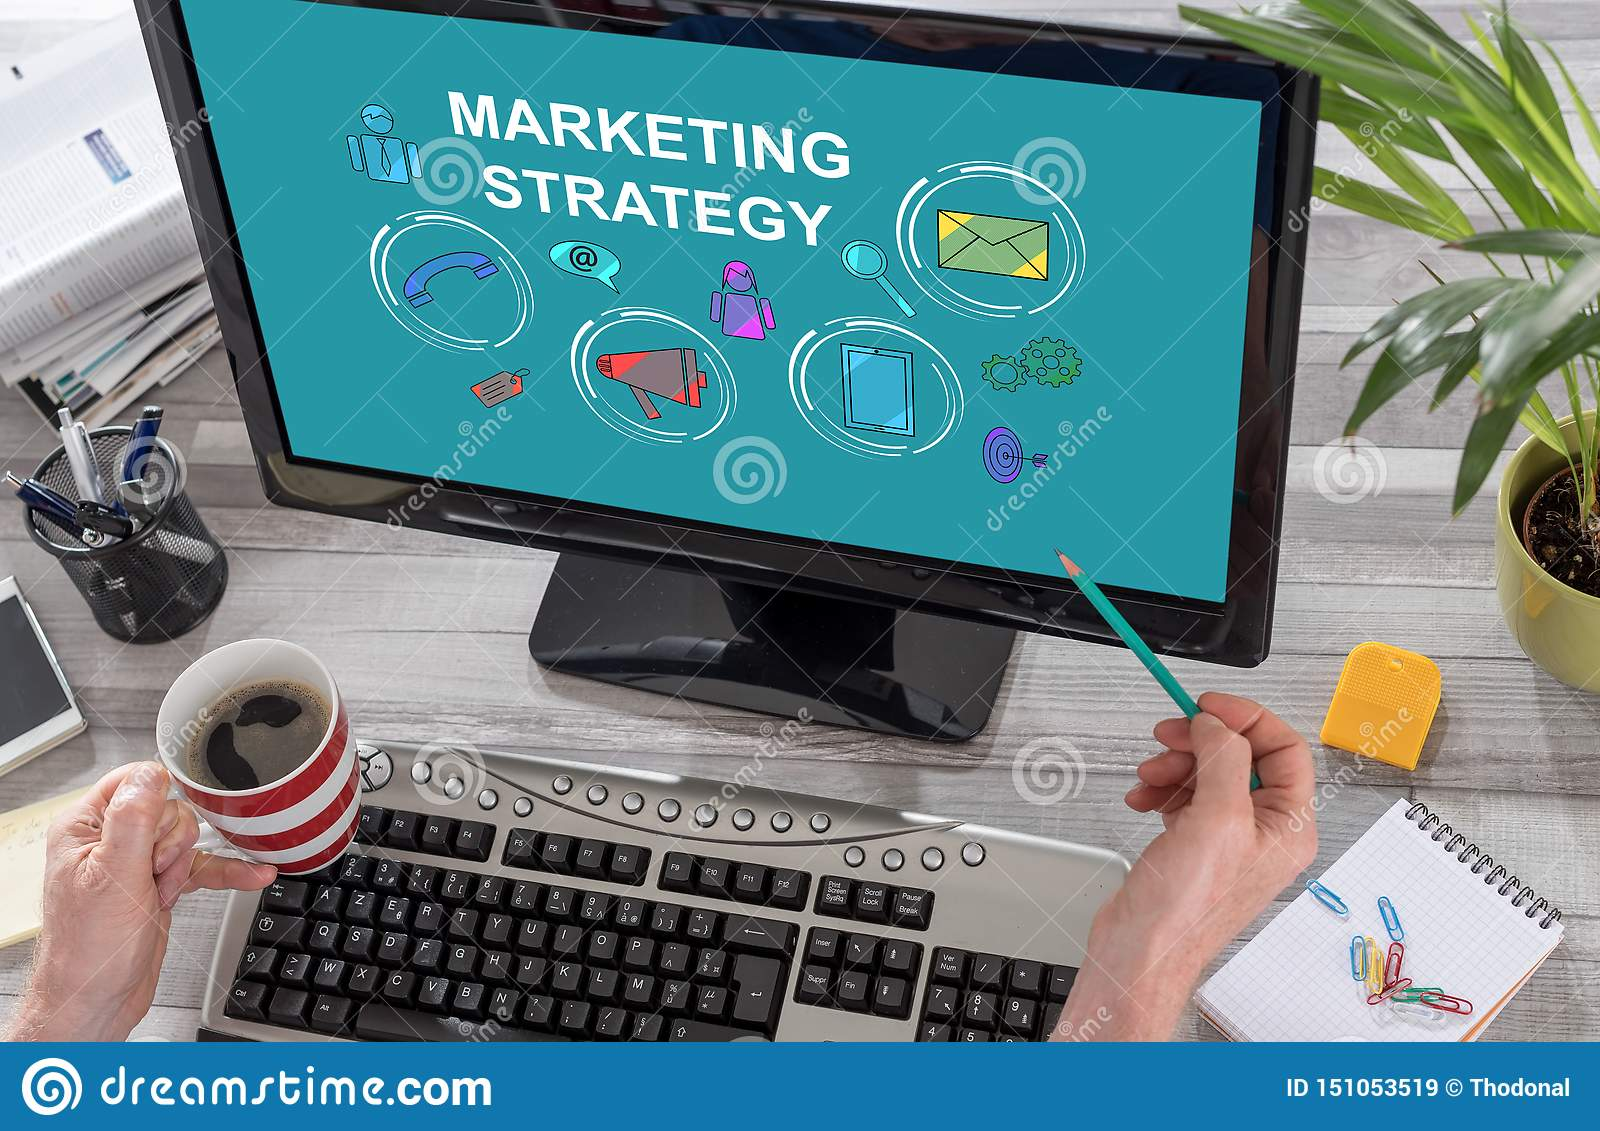 Marketing Strategy Concept On A Computer Stock Image ...